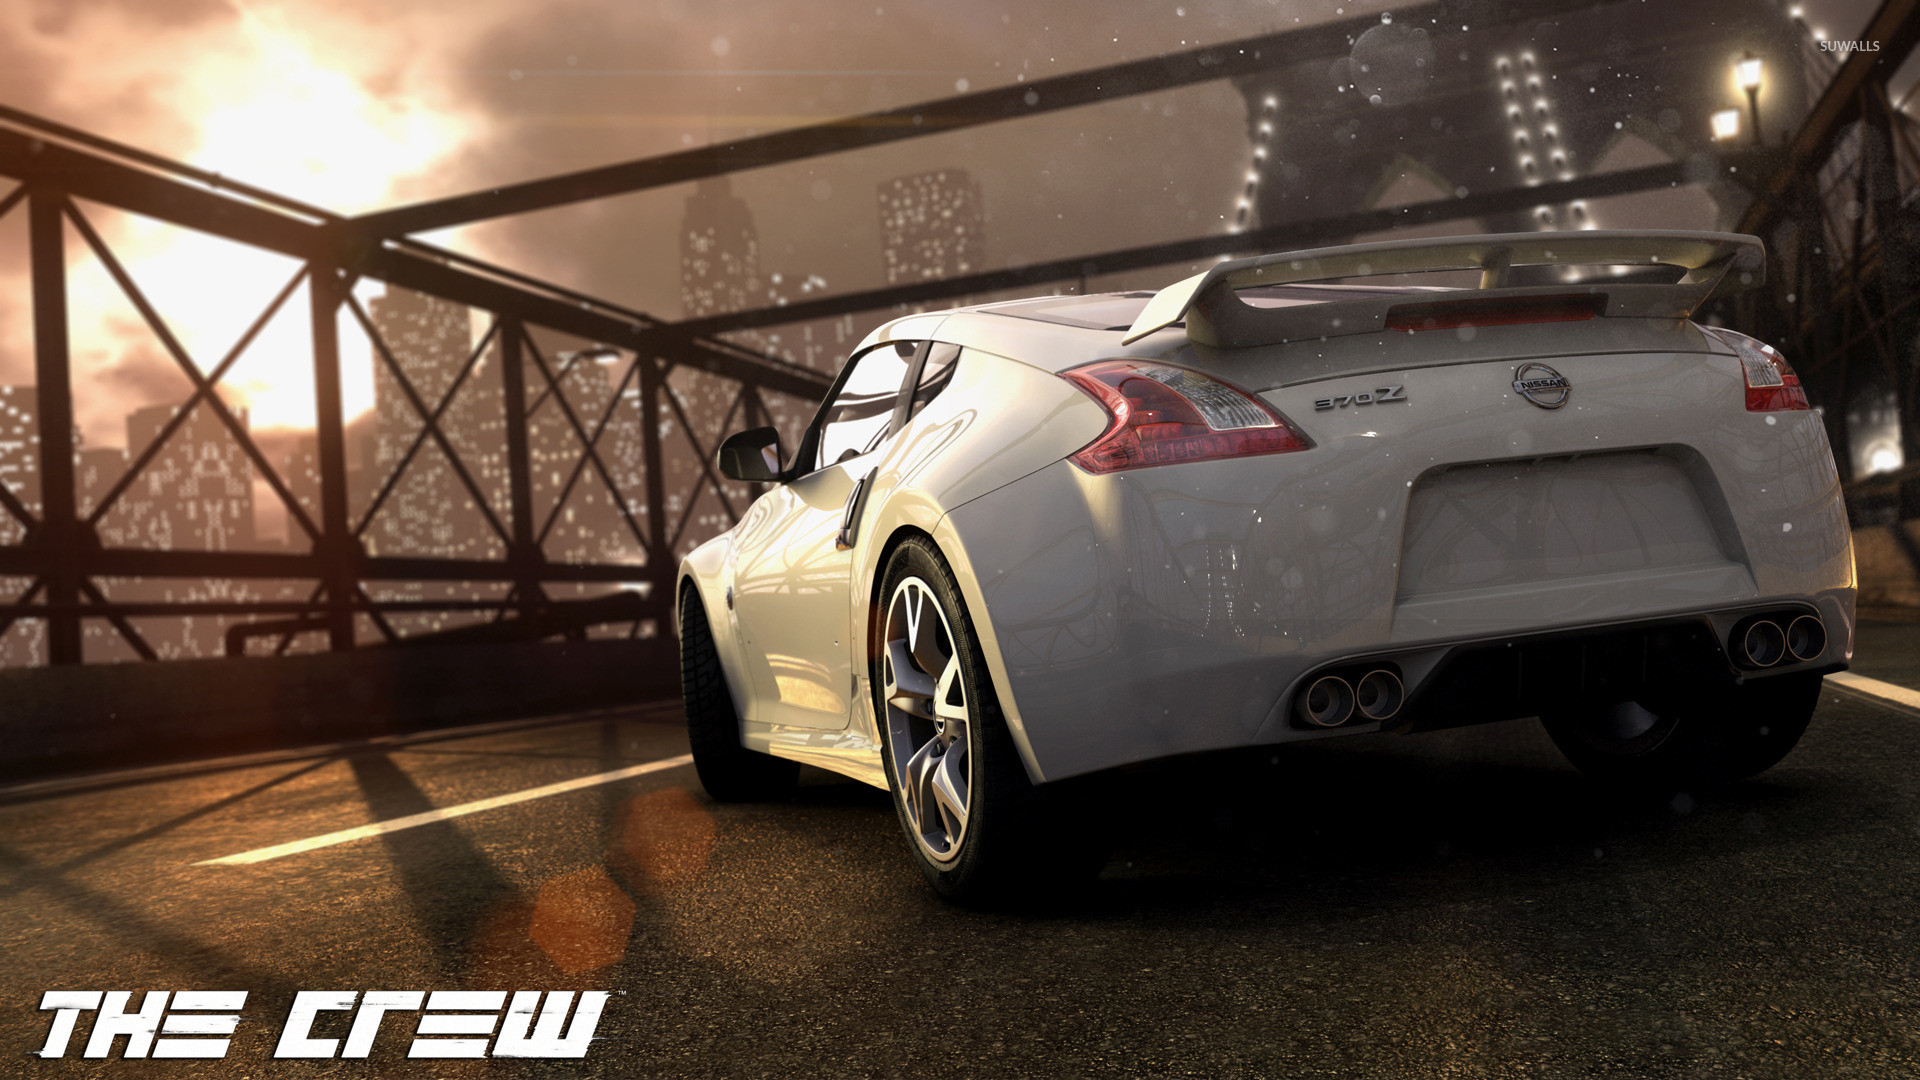 Nissan 370Z – The Crew wallpaper jpg